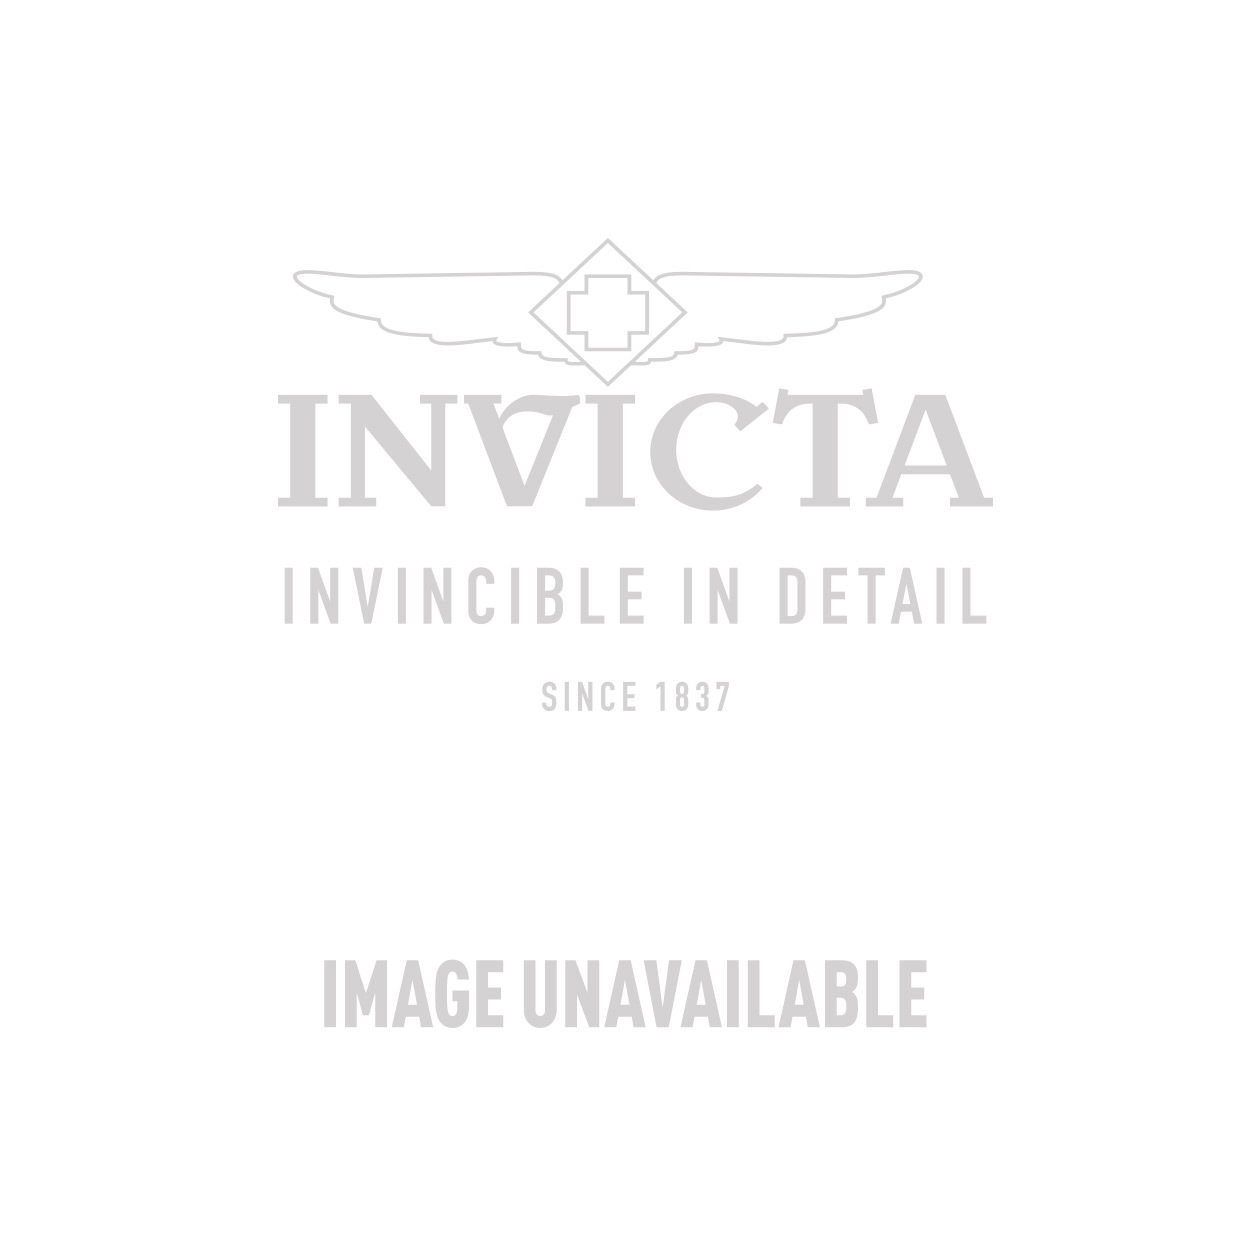 Invicta Sea Hunter Swiss Movement Quartz Watch - Stainless Steel case Stainless Steel band - Model 19601